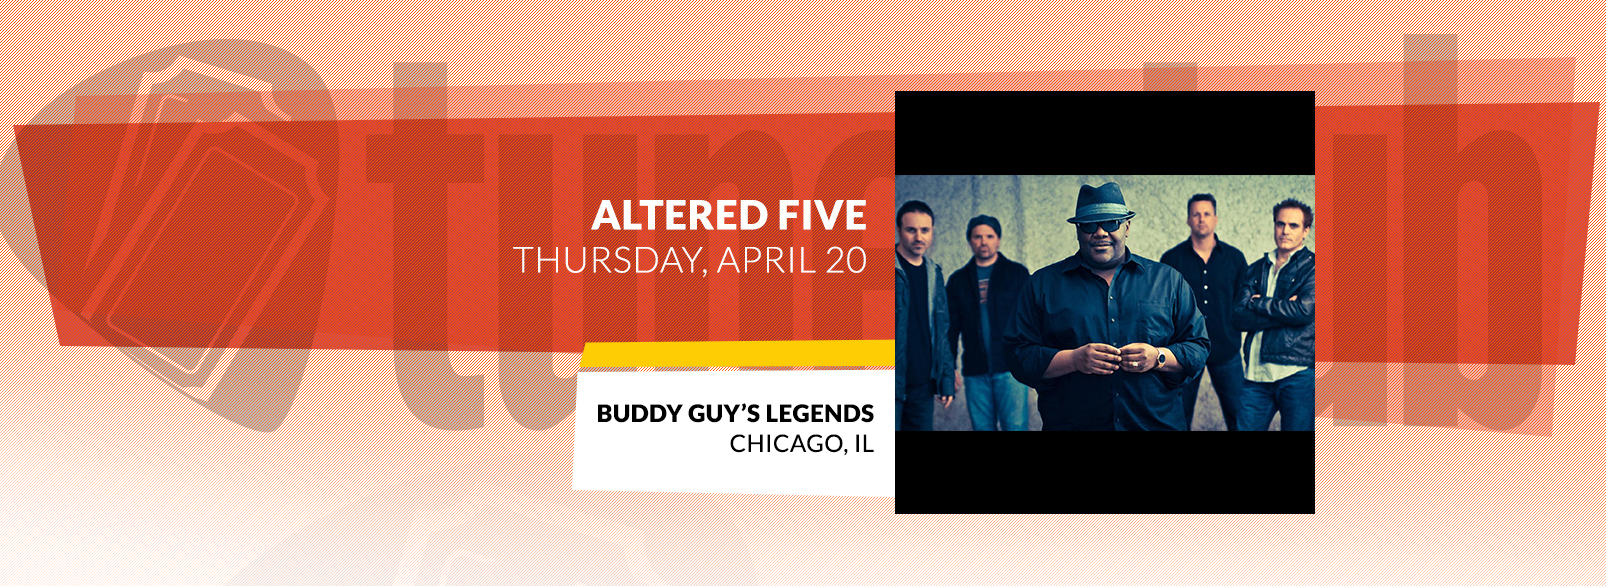 Altered Five @ Buddy Guy's Legends